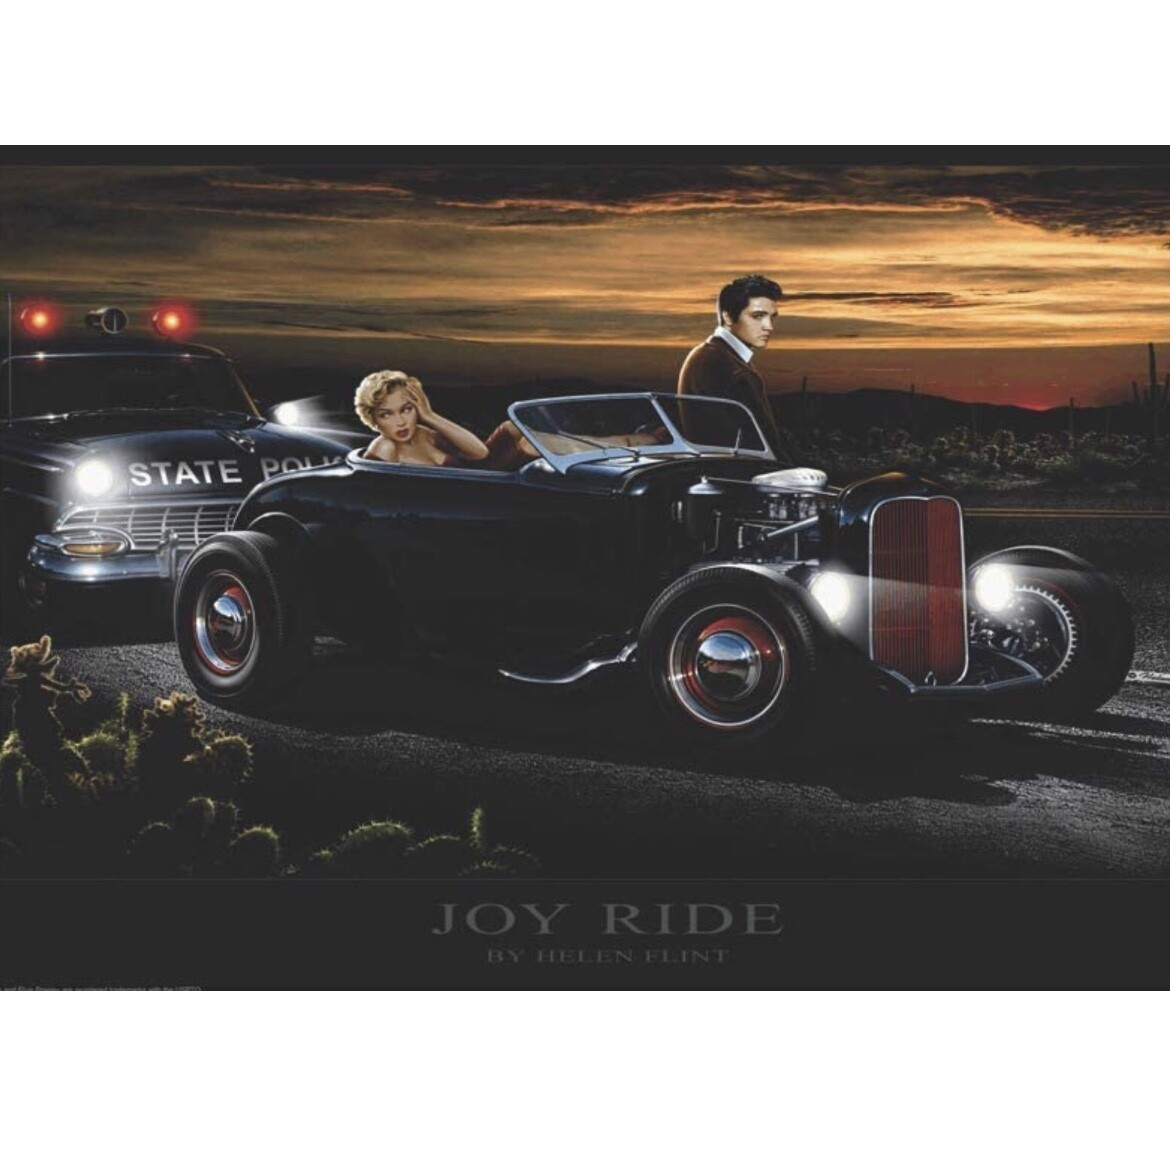 JOYRIDE ELVIS AND MARILYN POSTER